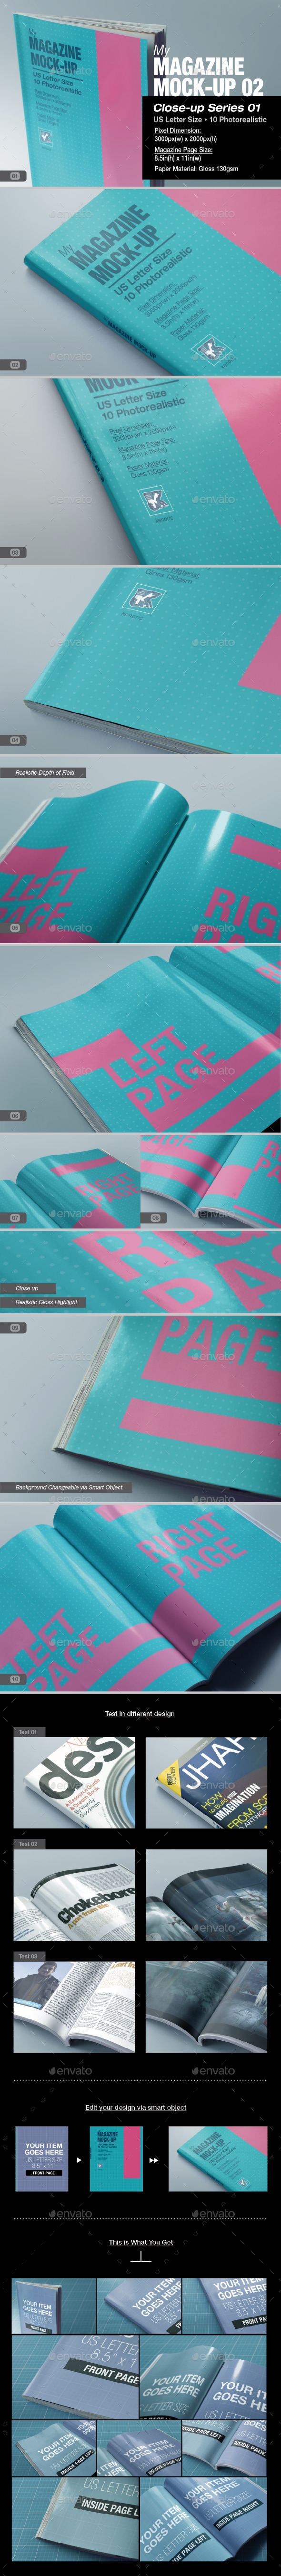 GraphicRiver myMagazine Mock-up 02 9718826